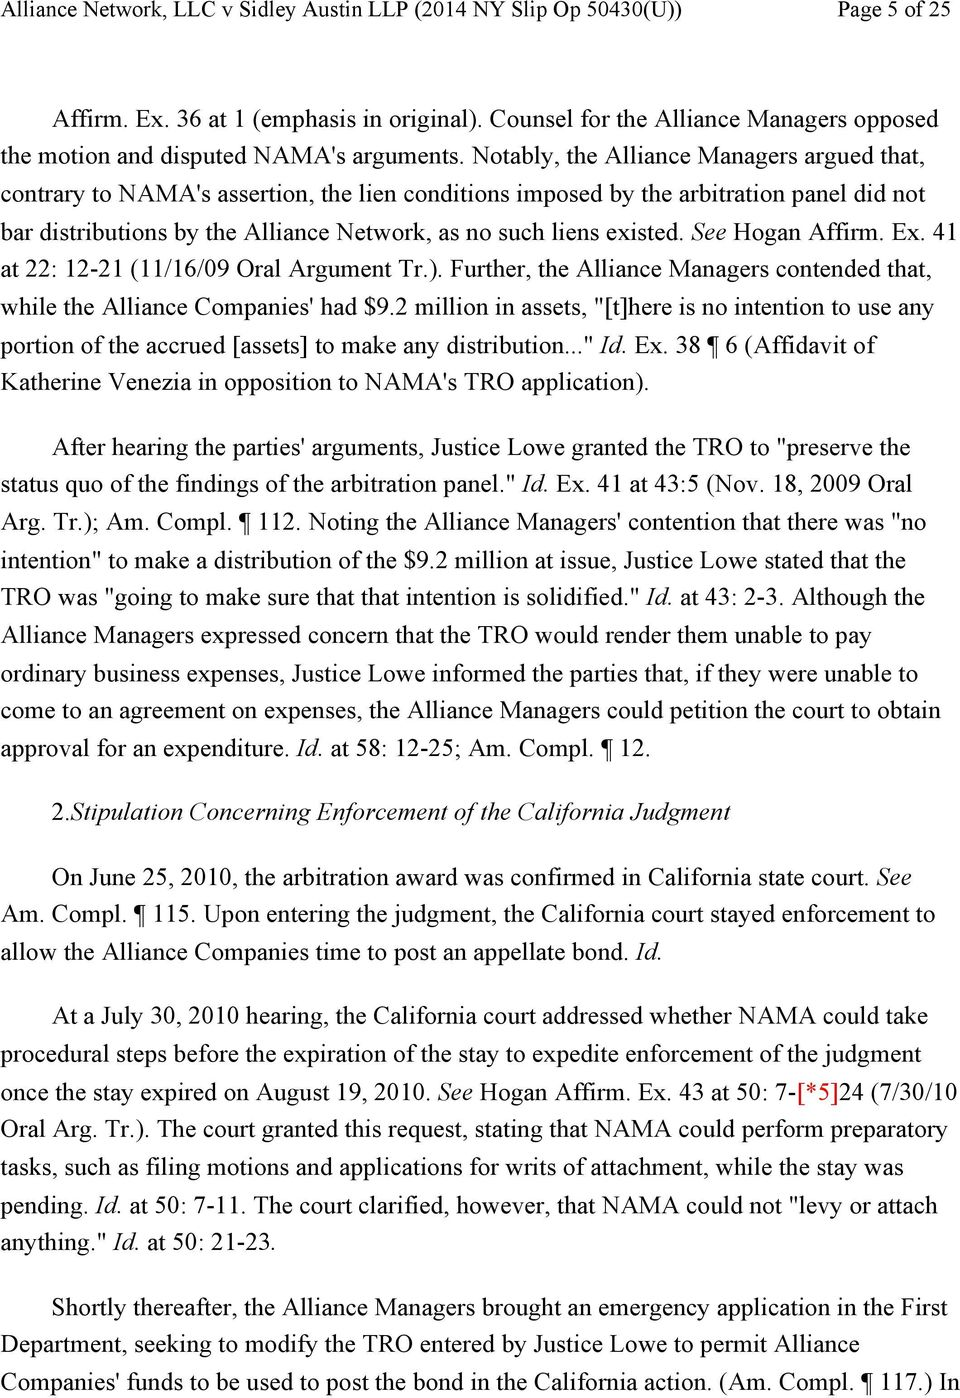 existed. See Hogan Affirm. Ex. 41 at 22: 12-21 (11/16/09 Oral Argument Tr.). Further, the Alliance Managers contended that, while the Alliance Companies' had $9.